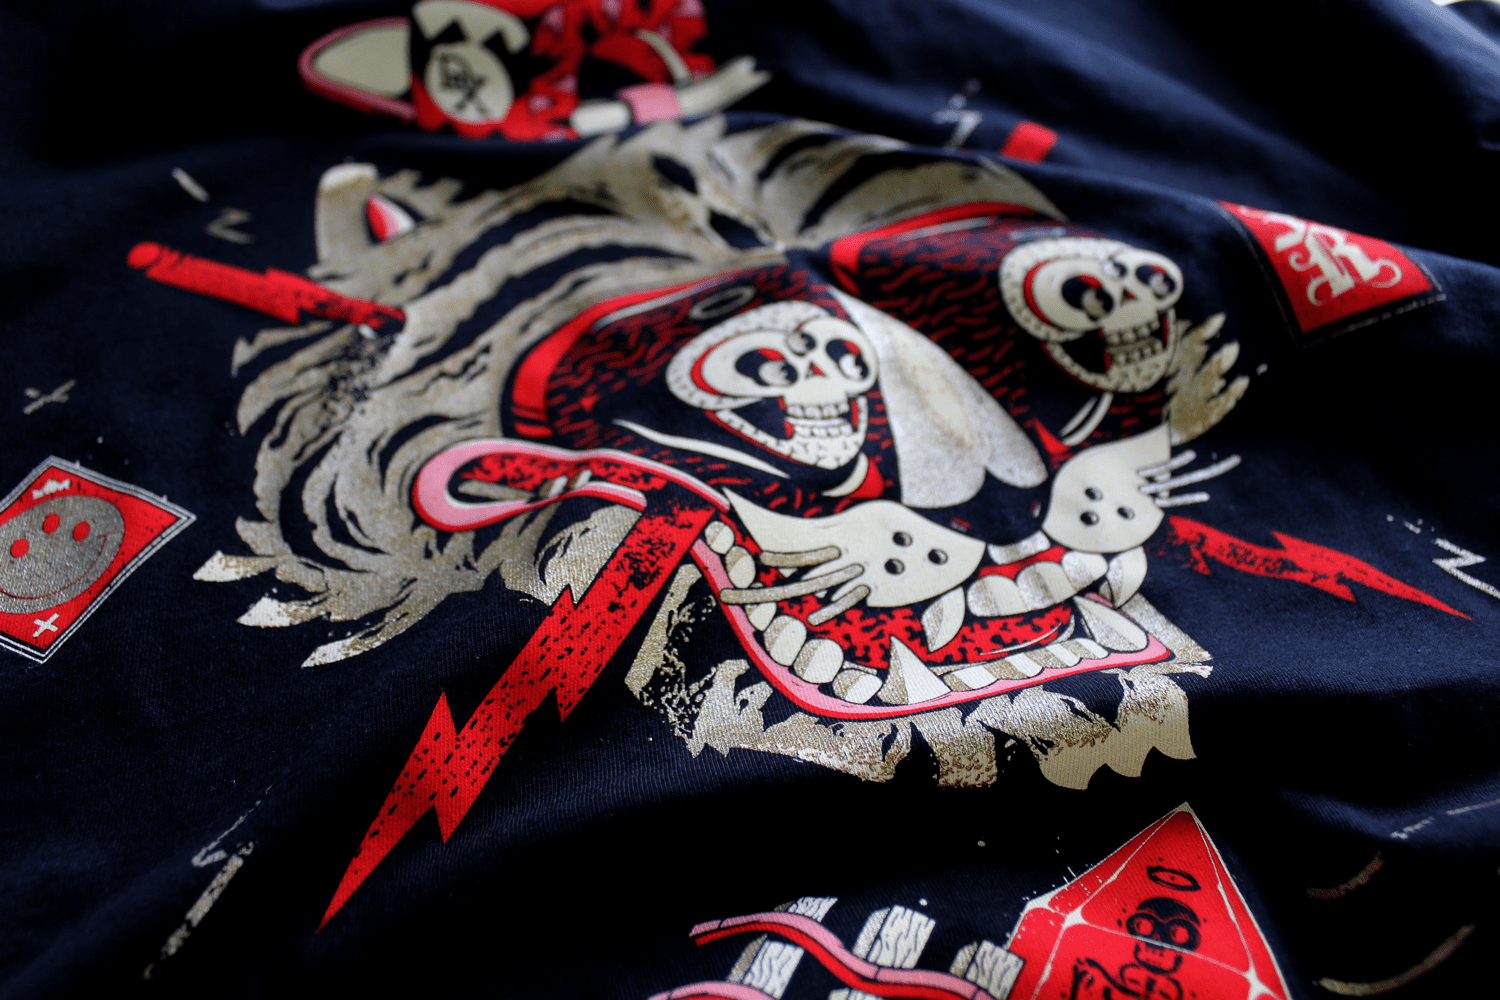 Screen printed t-shirts designed for us by DXTR.